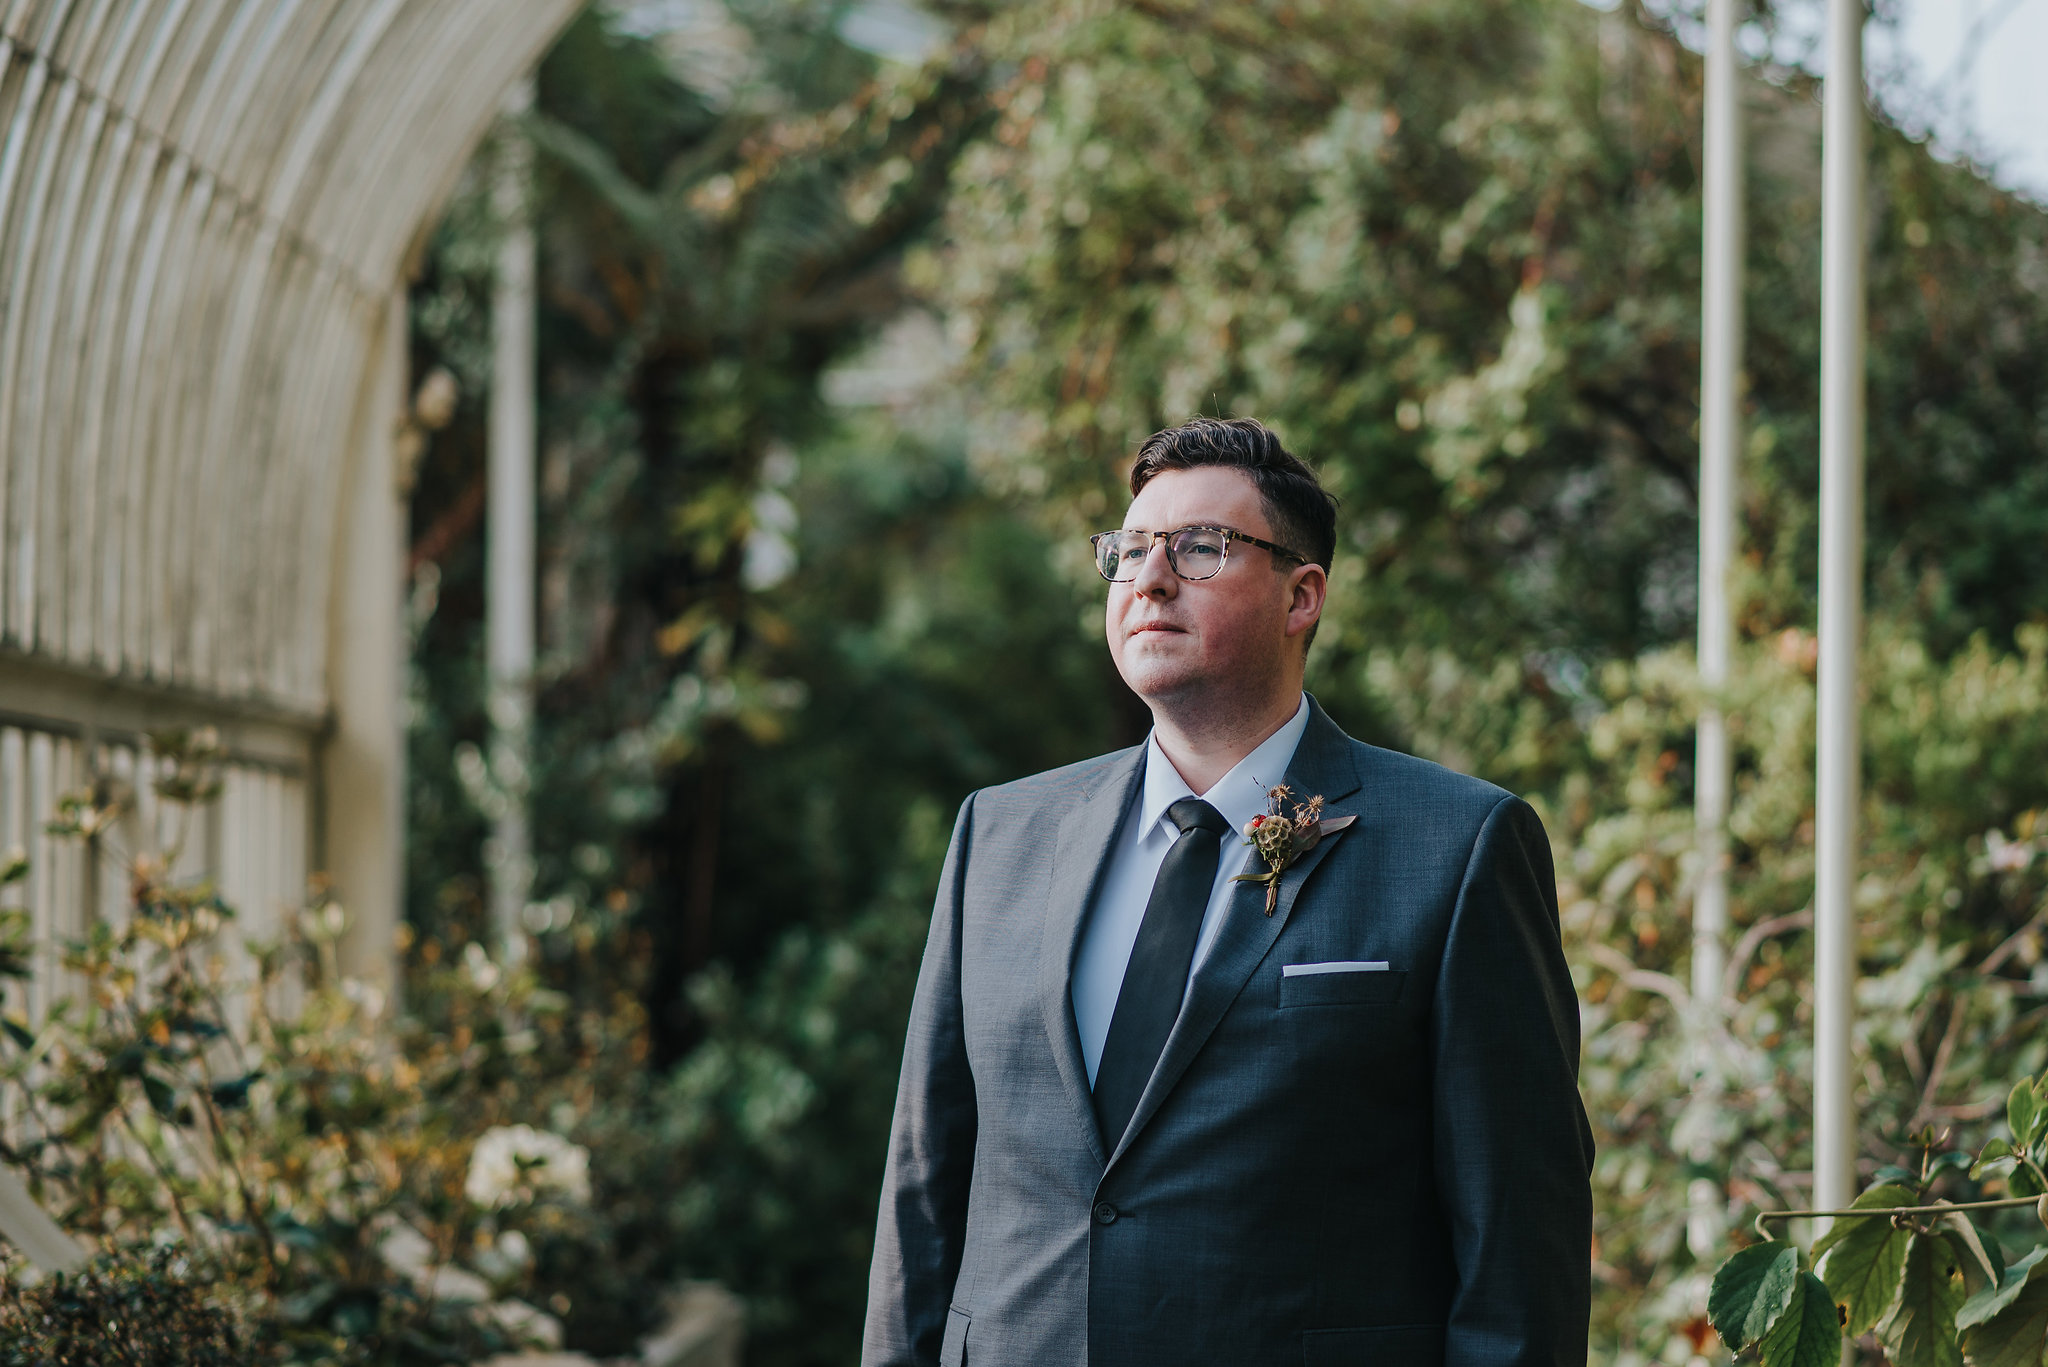 Groom at the Botanic Gardens Dublin on his wedding day